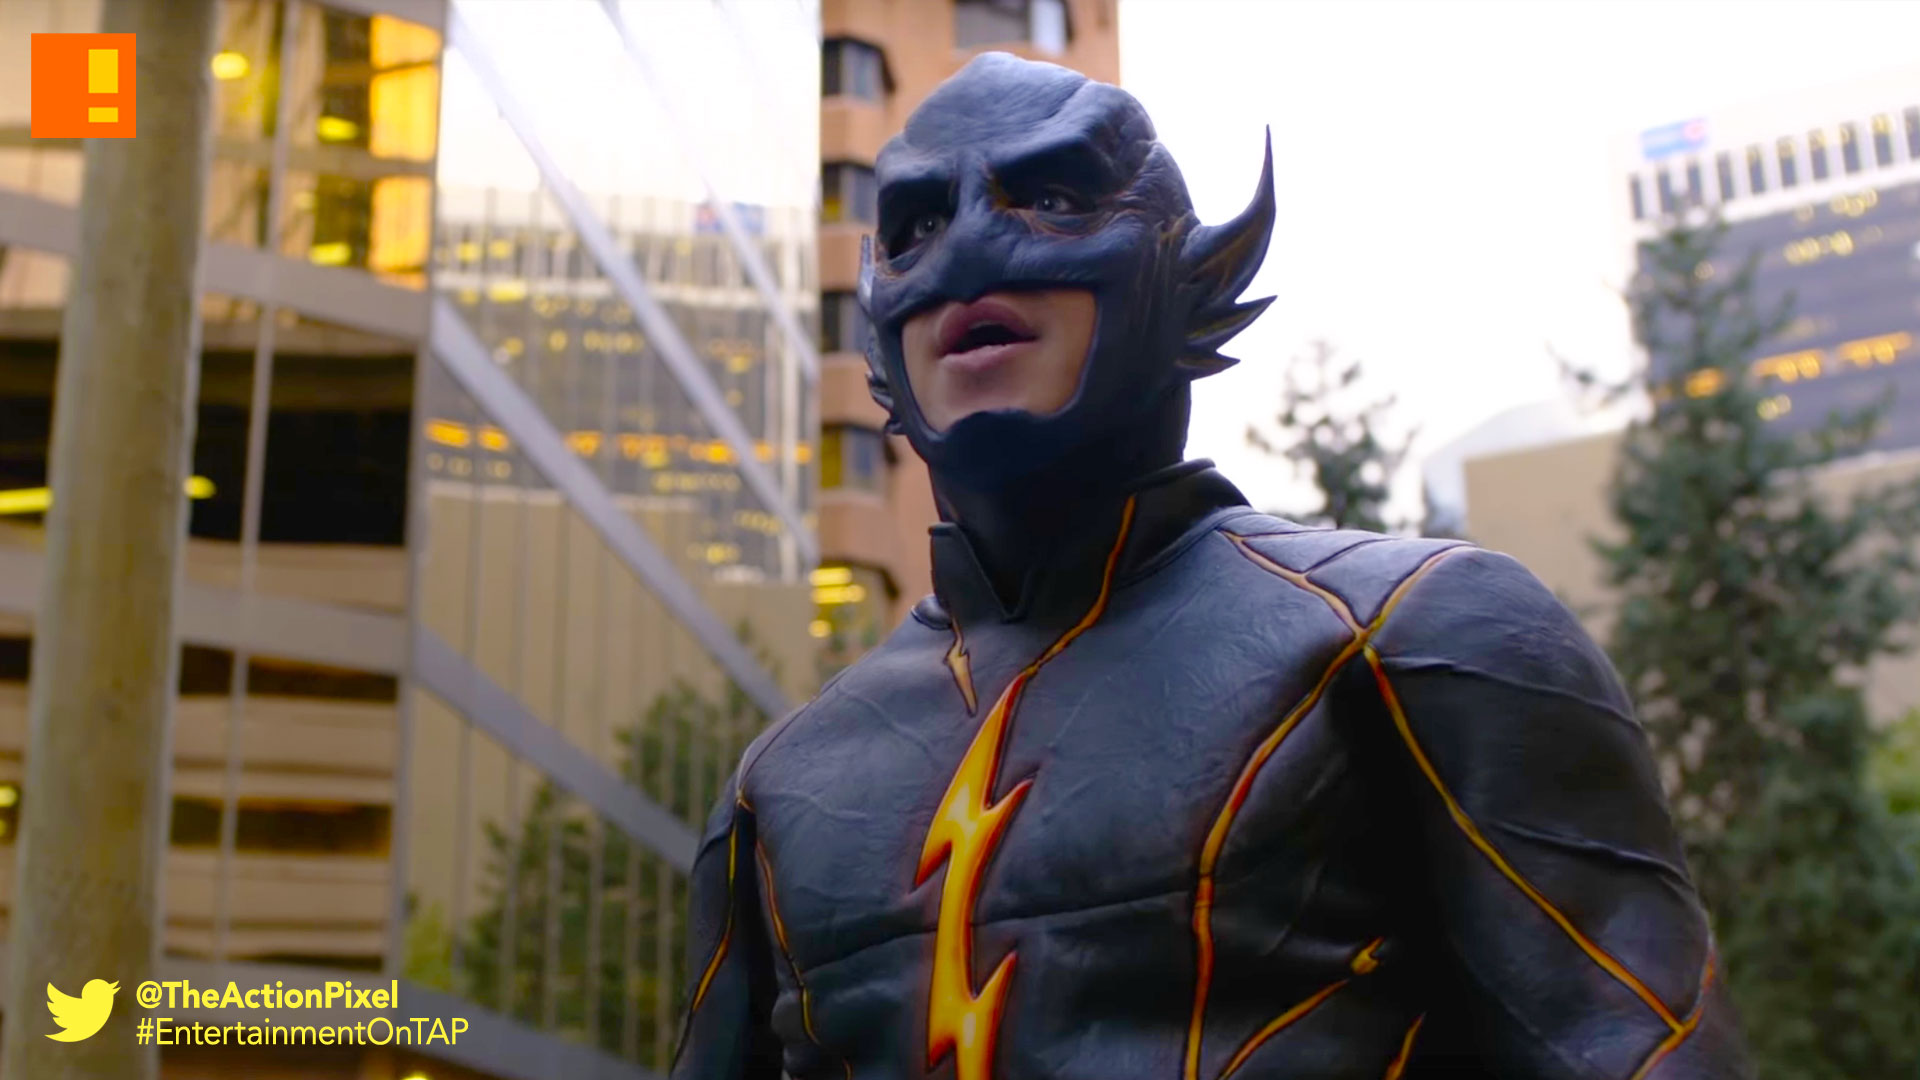 the rival, flash, season 3, kid flash, the action pixel, cw, the cw , the cw network, the action pixel, entertainment on tap,